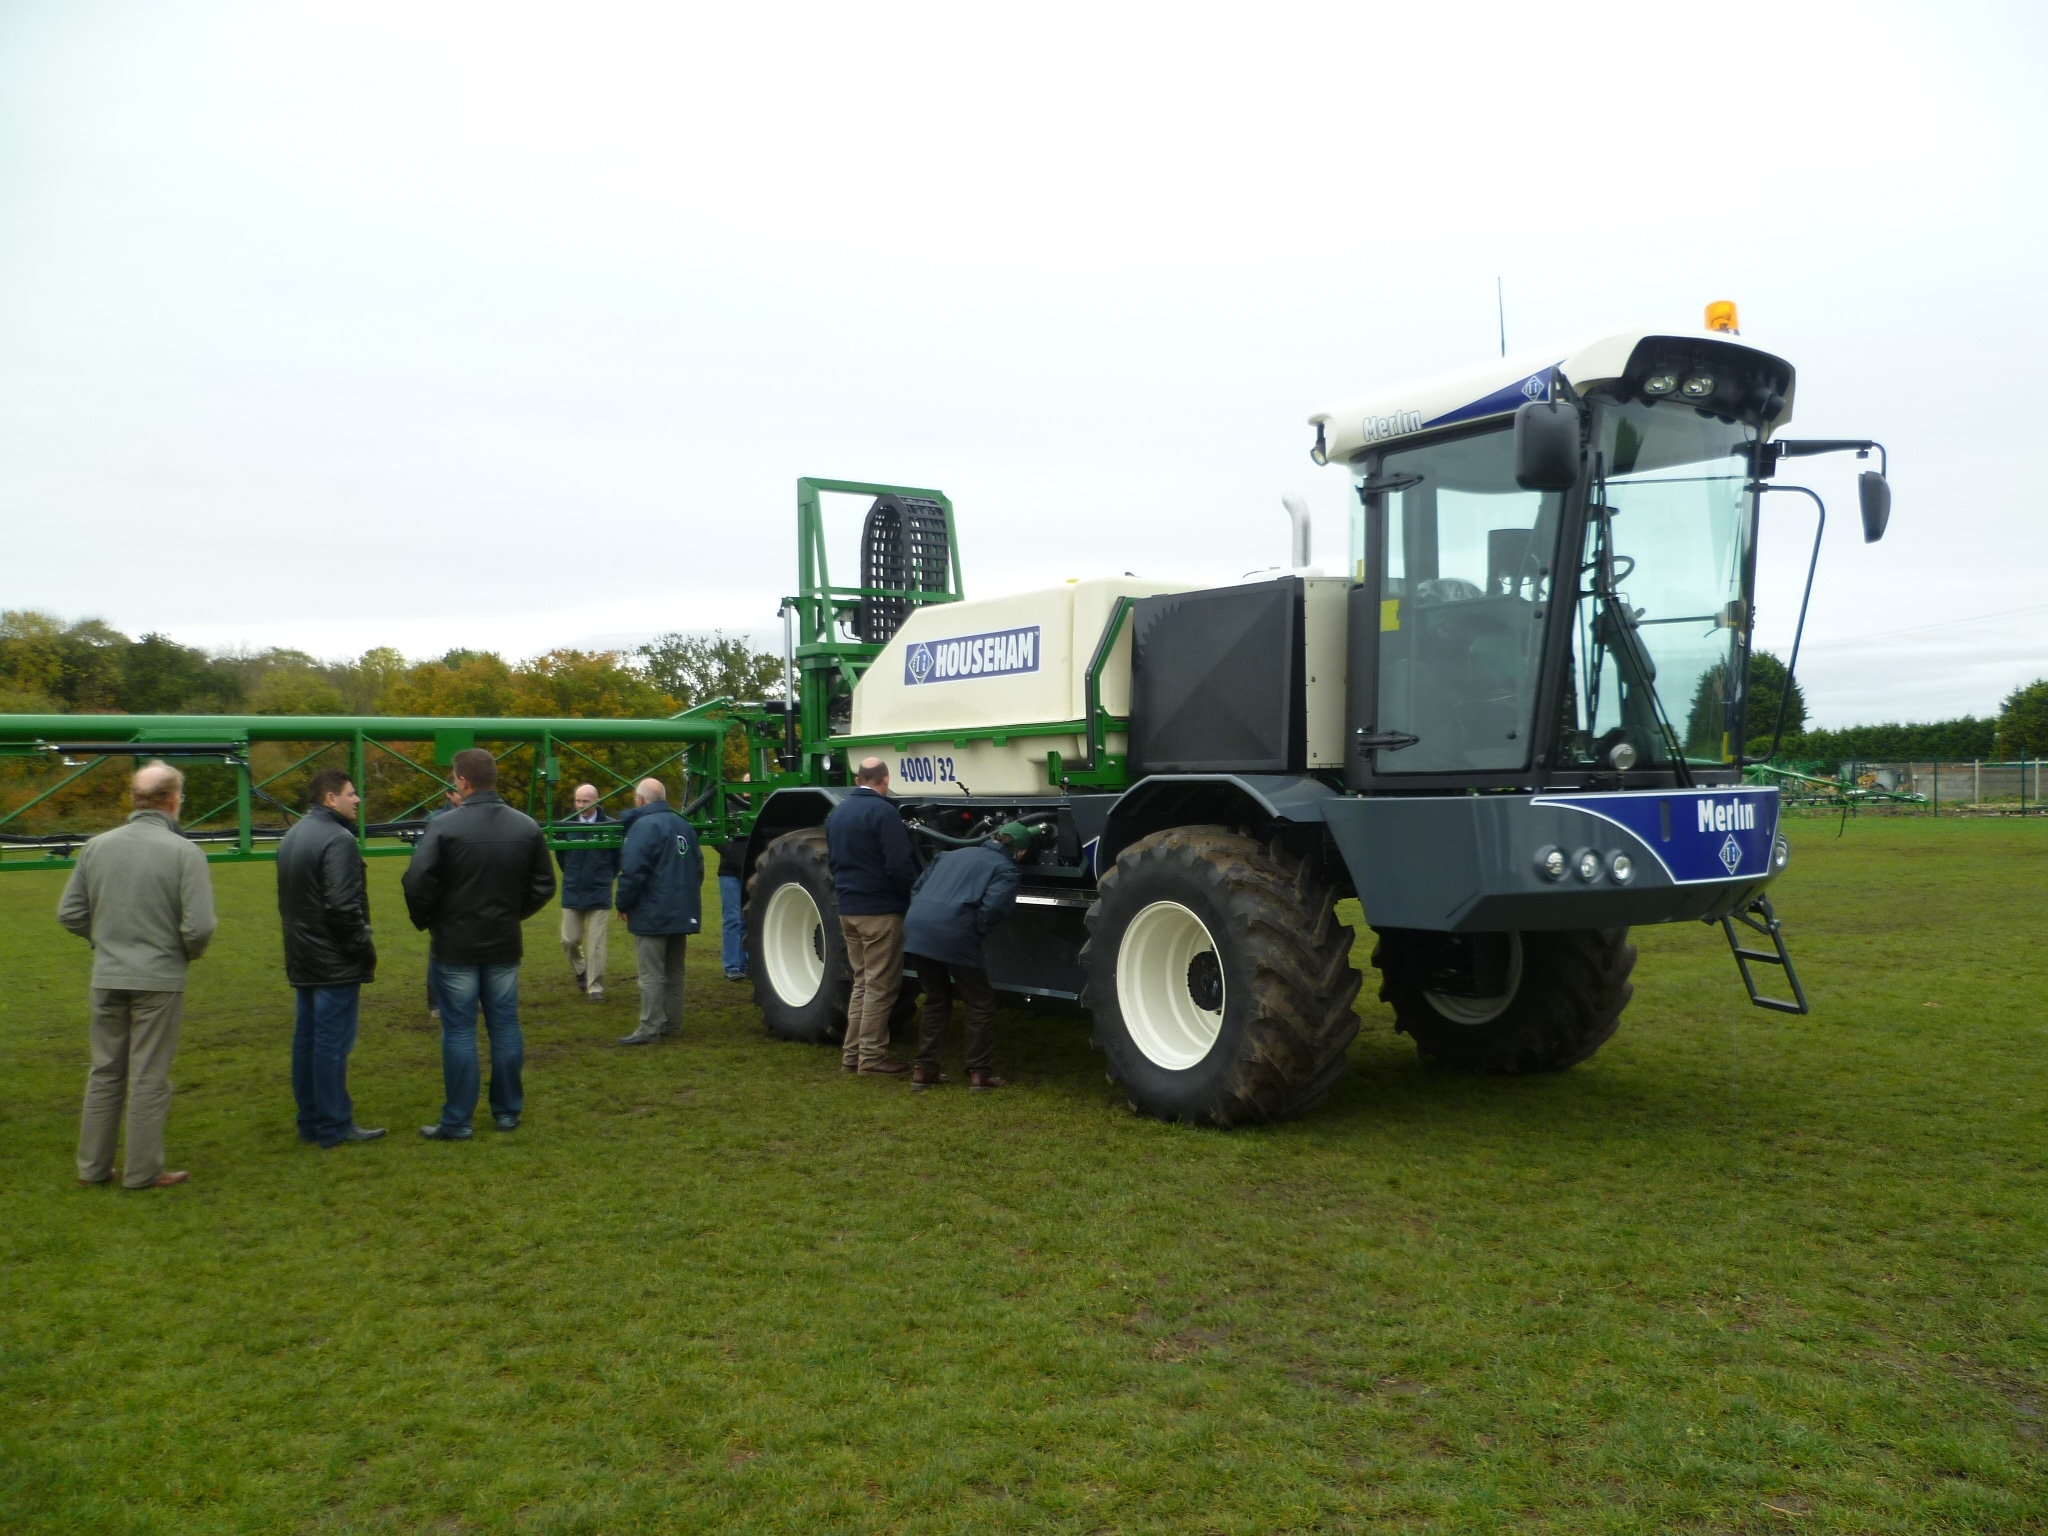 Househam Latest Merlin Model - EuroAgri